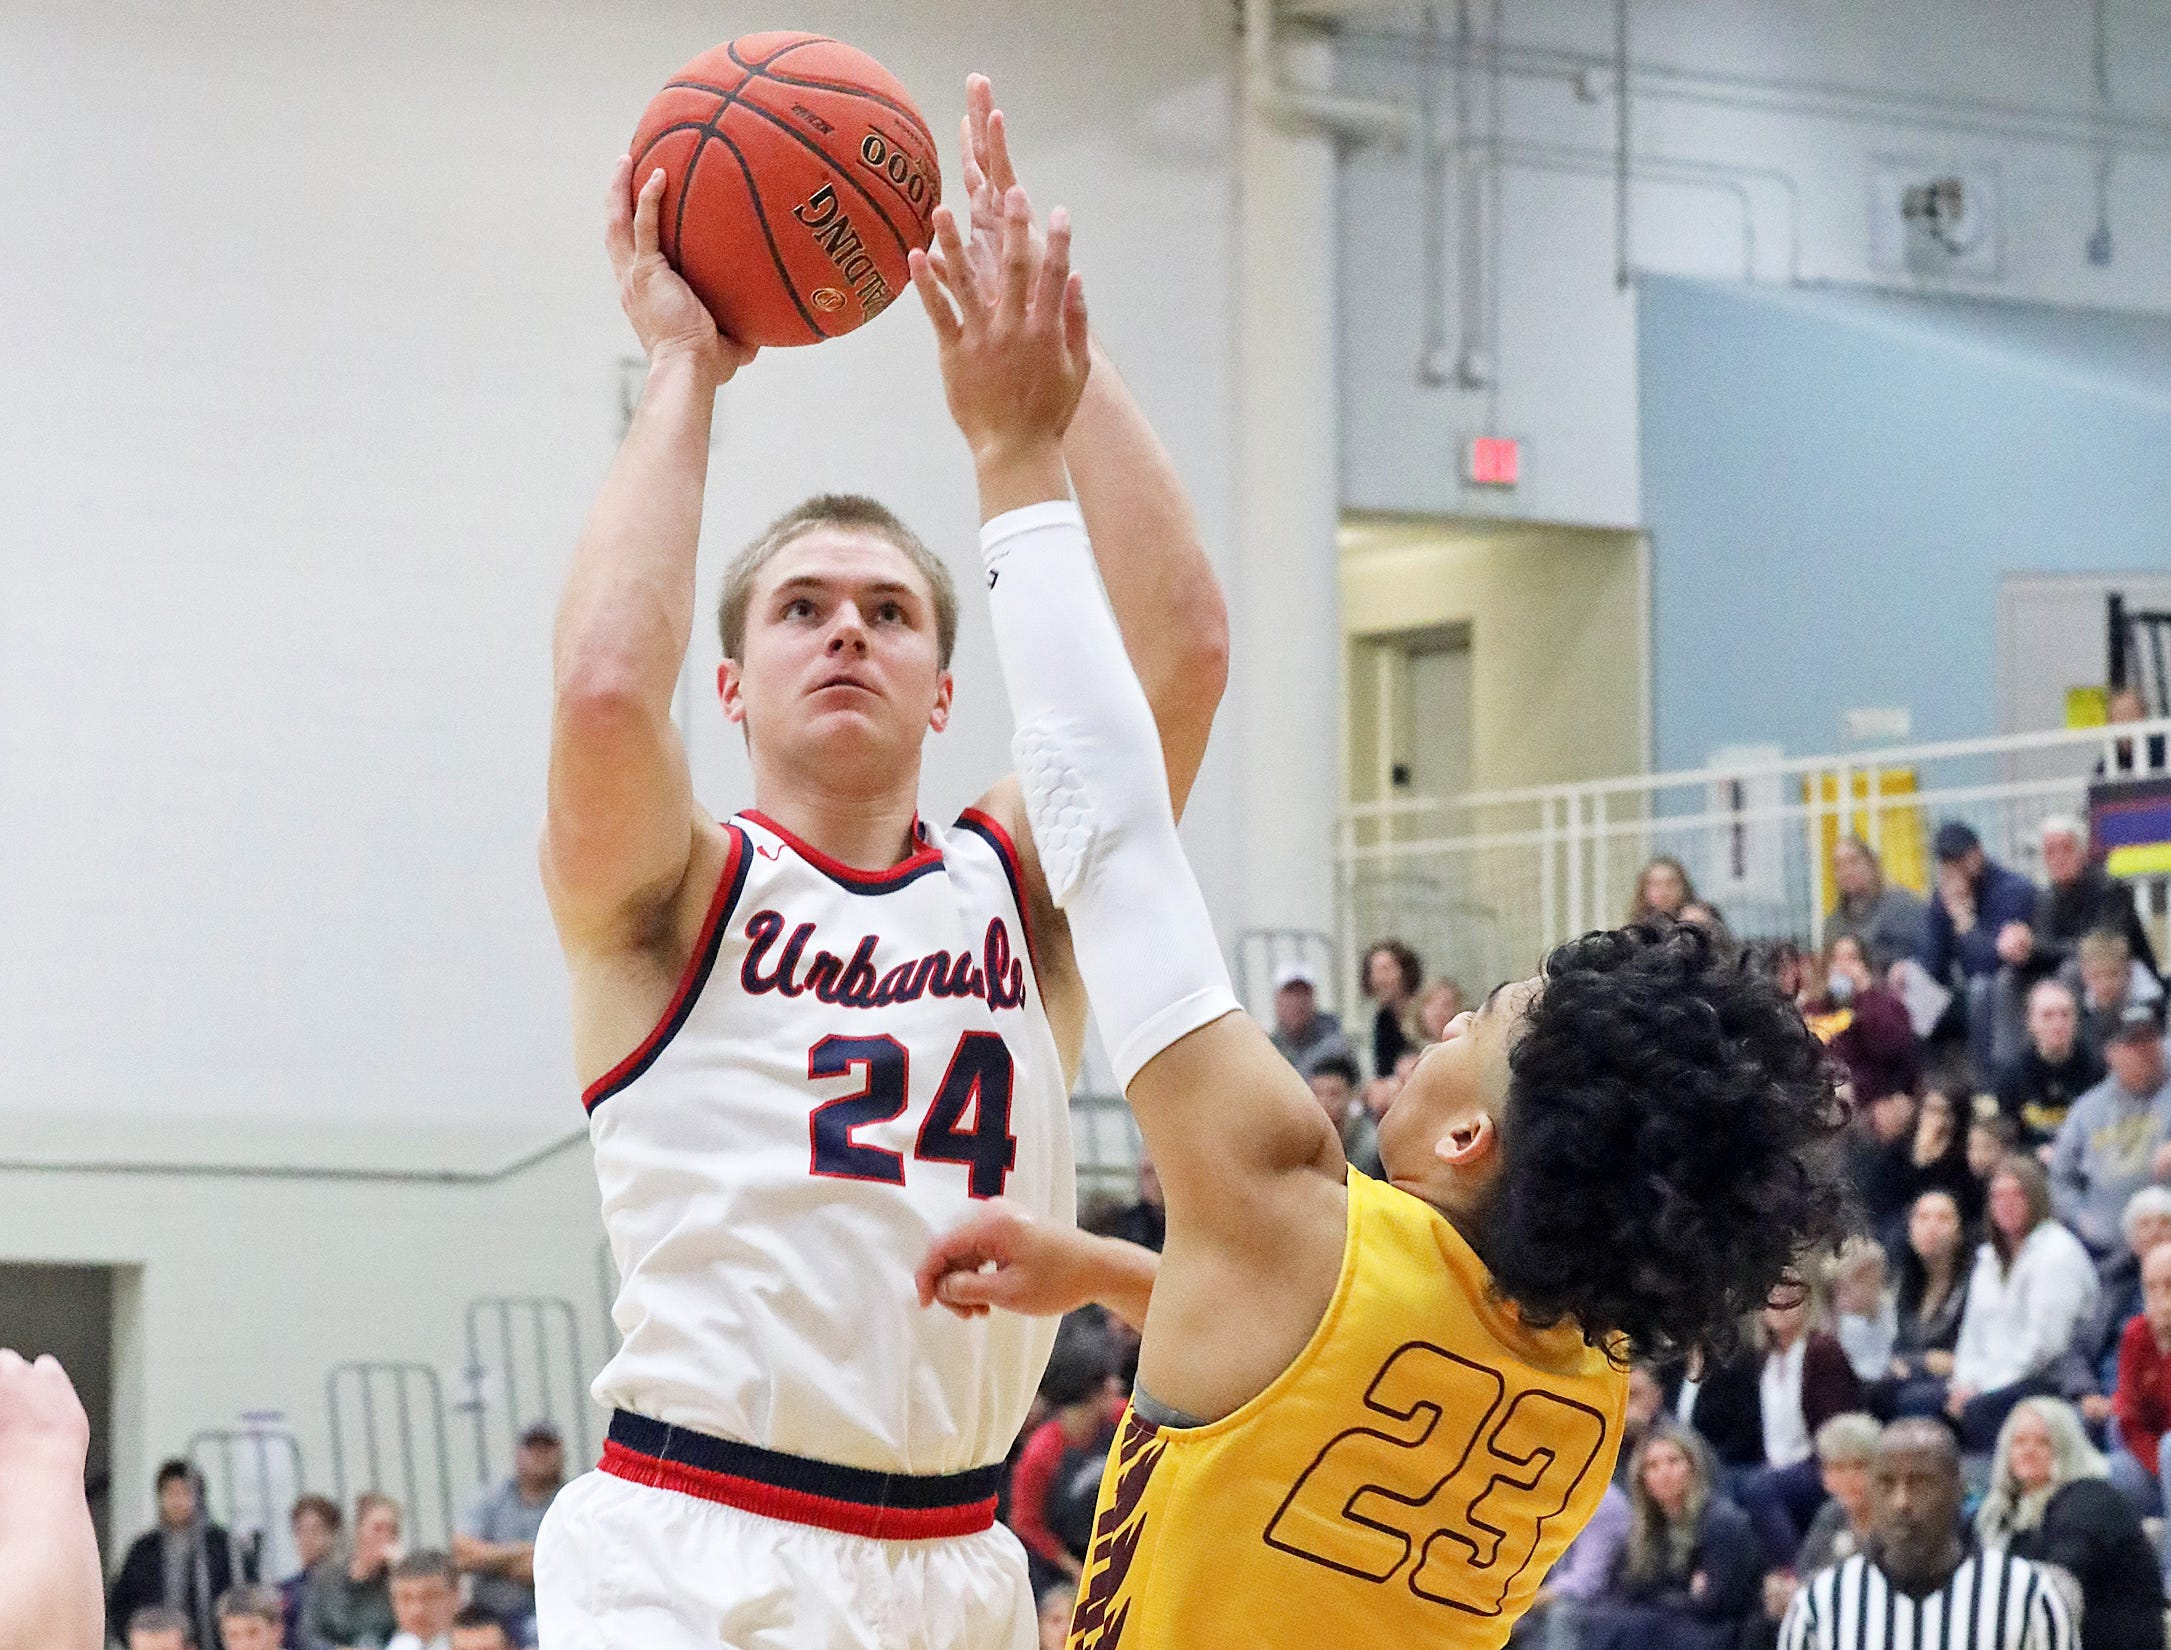 Urbandale senior guard Will Pattison shoots over Ankeny senior Grant Moeller as the Ankeny Hawks compete against the Urbandale J-Hawks in high school basketball on Friday, Dec. 14, 2018 at Urbandale High School.